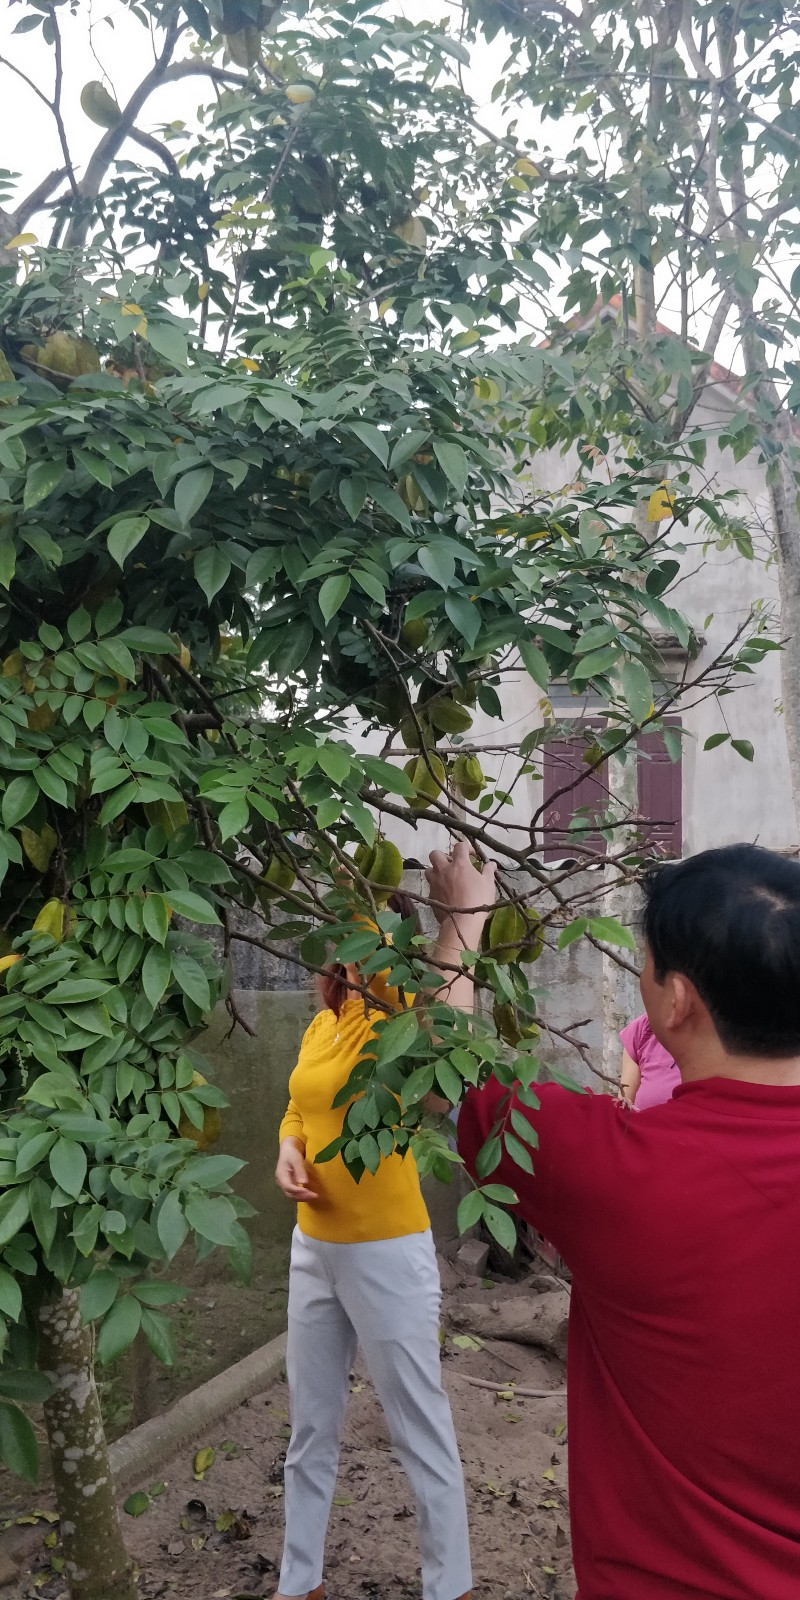 Star fruit tree at a friend's home